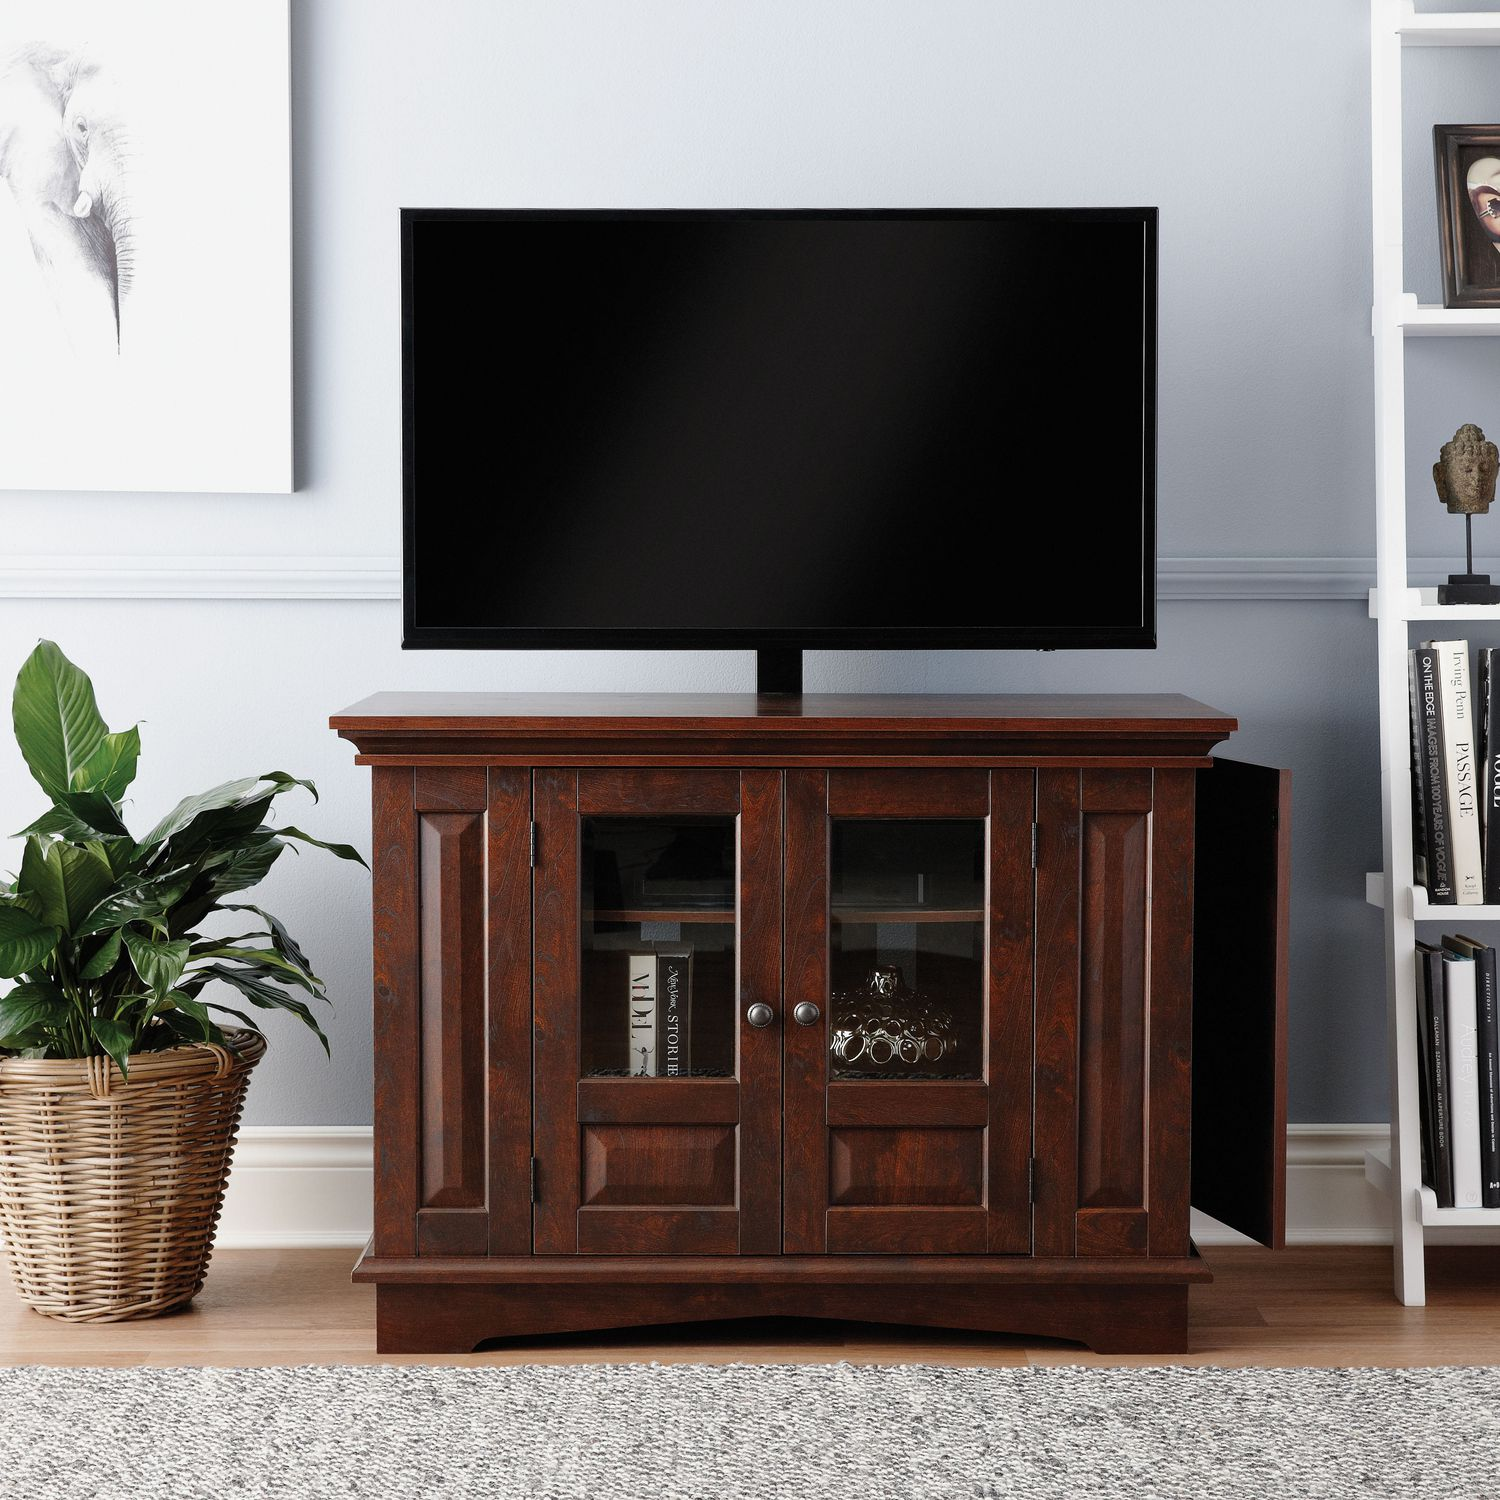 Willow mountain tv stand with mount with meuble tv lack for Ikea meuble angle mural